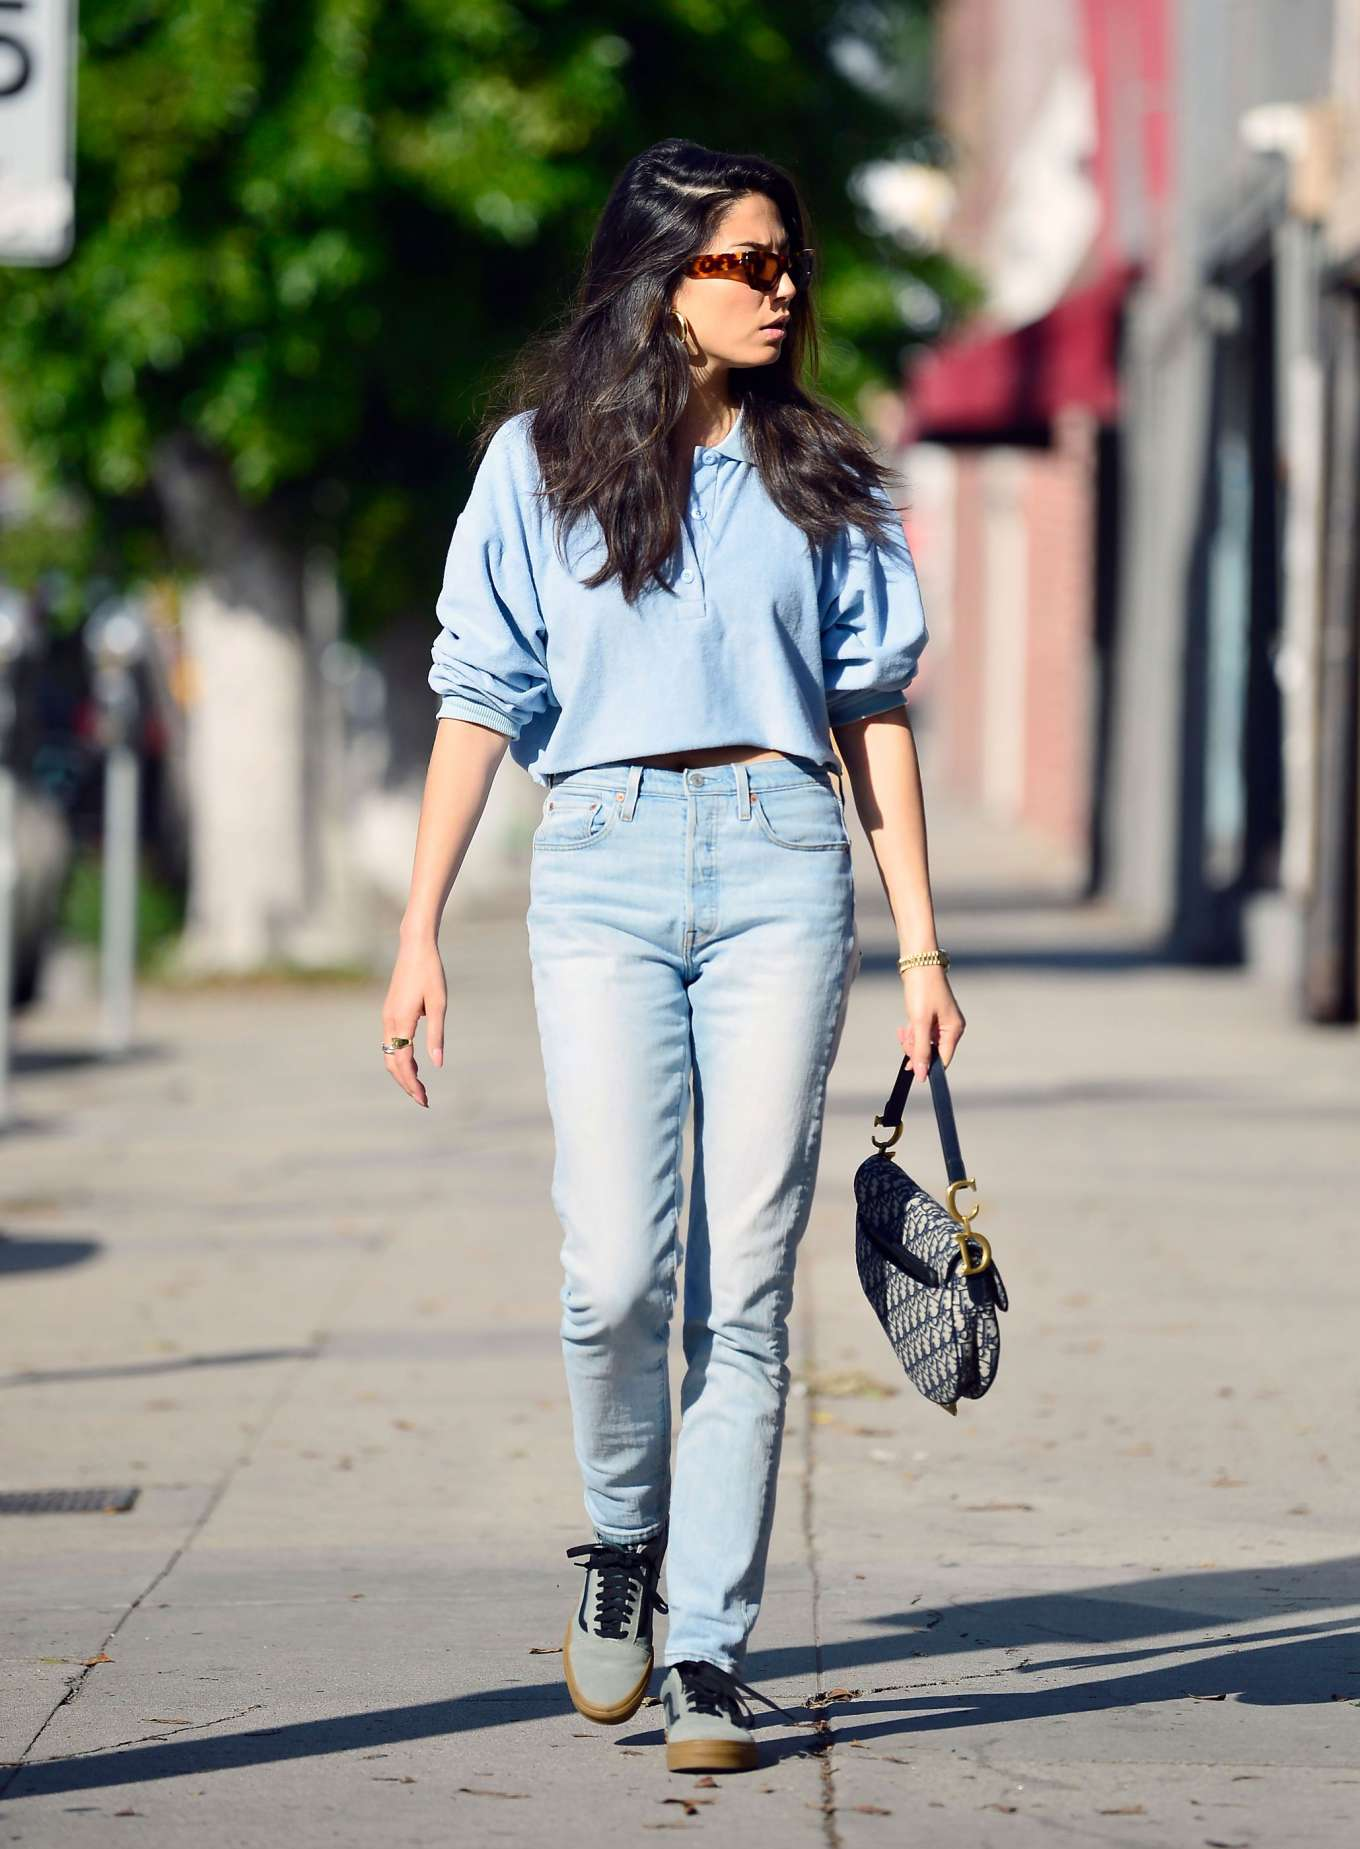 Jessica Gomes - Visits her agency in Los Angeles